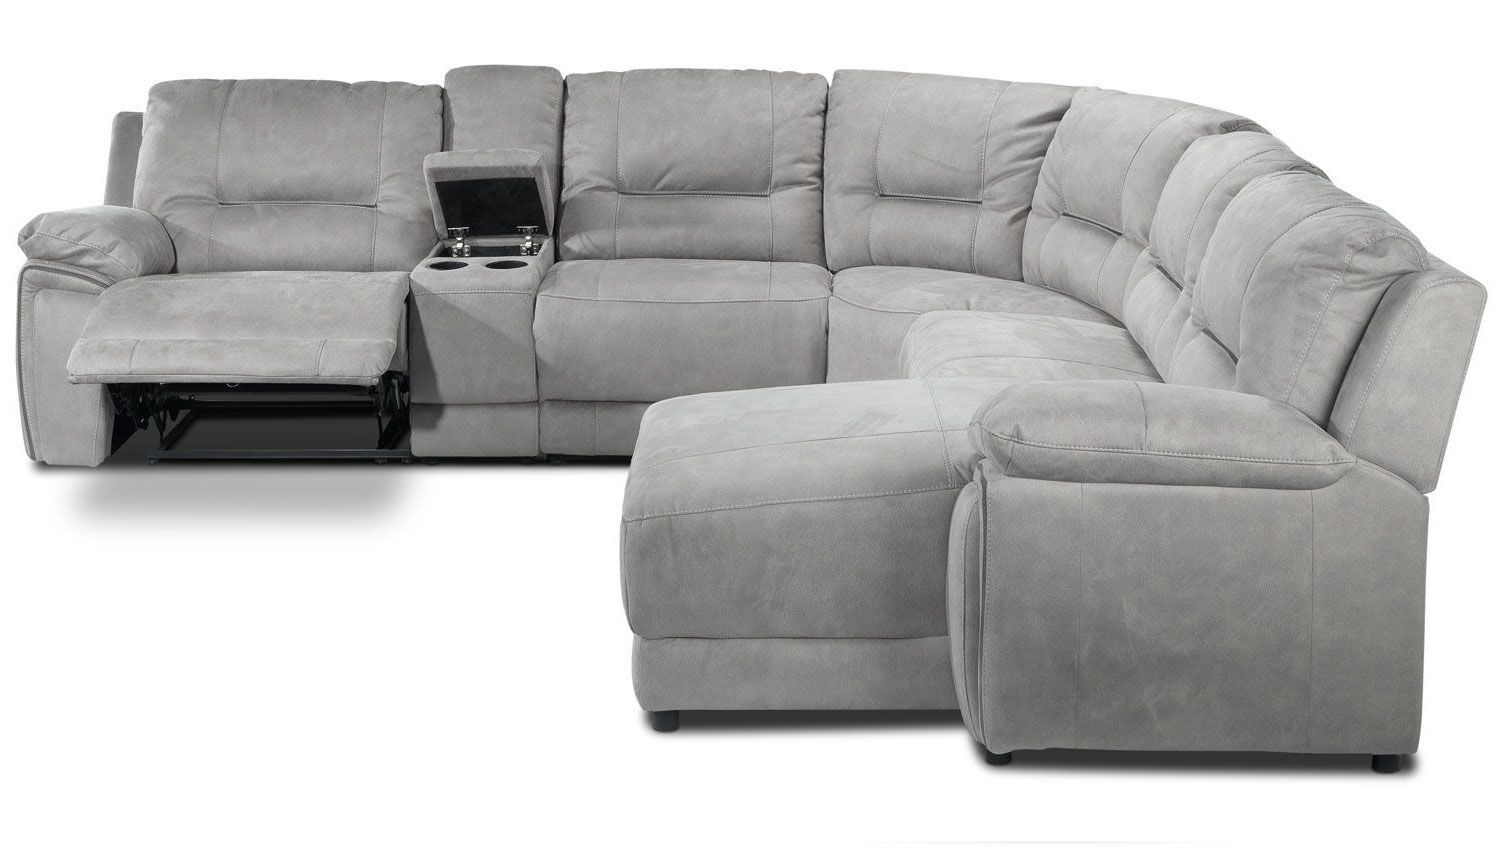 leon s mackenzie sofa mint green chair pasadena 6 pc reclining sectional with chaise design